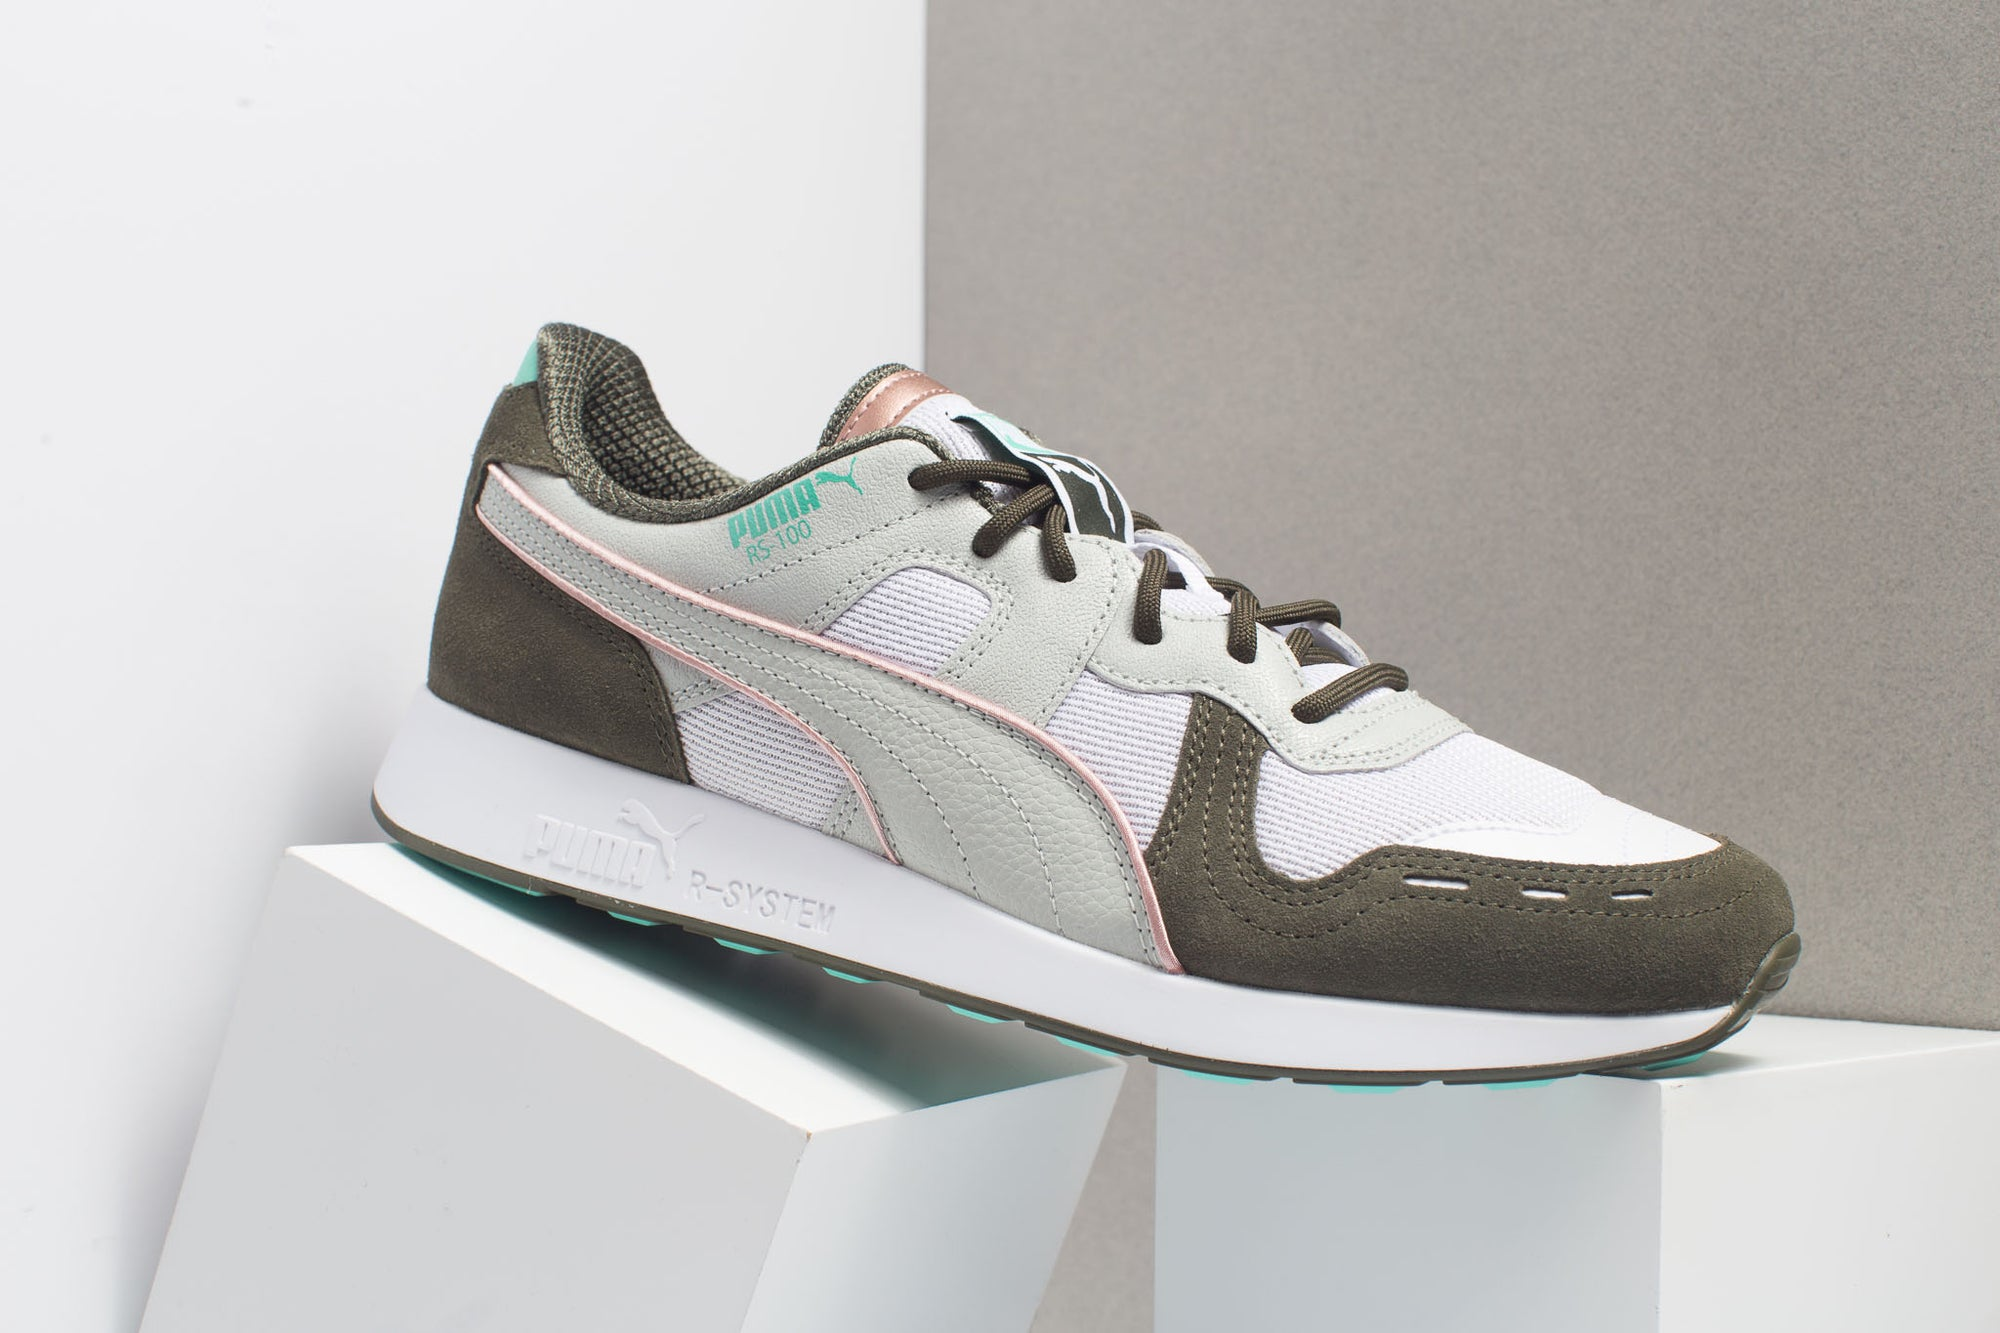 PUMA RS 100 x EMORY JONES Oneness Boutique